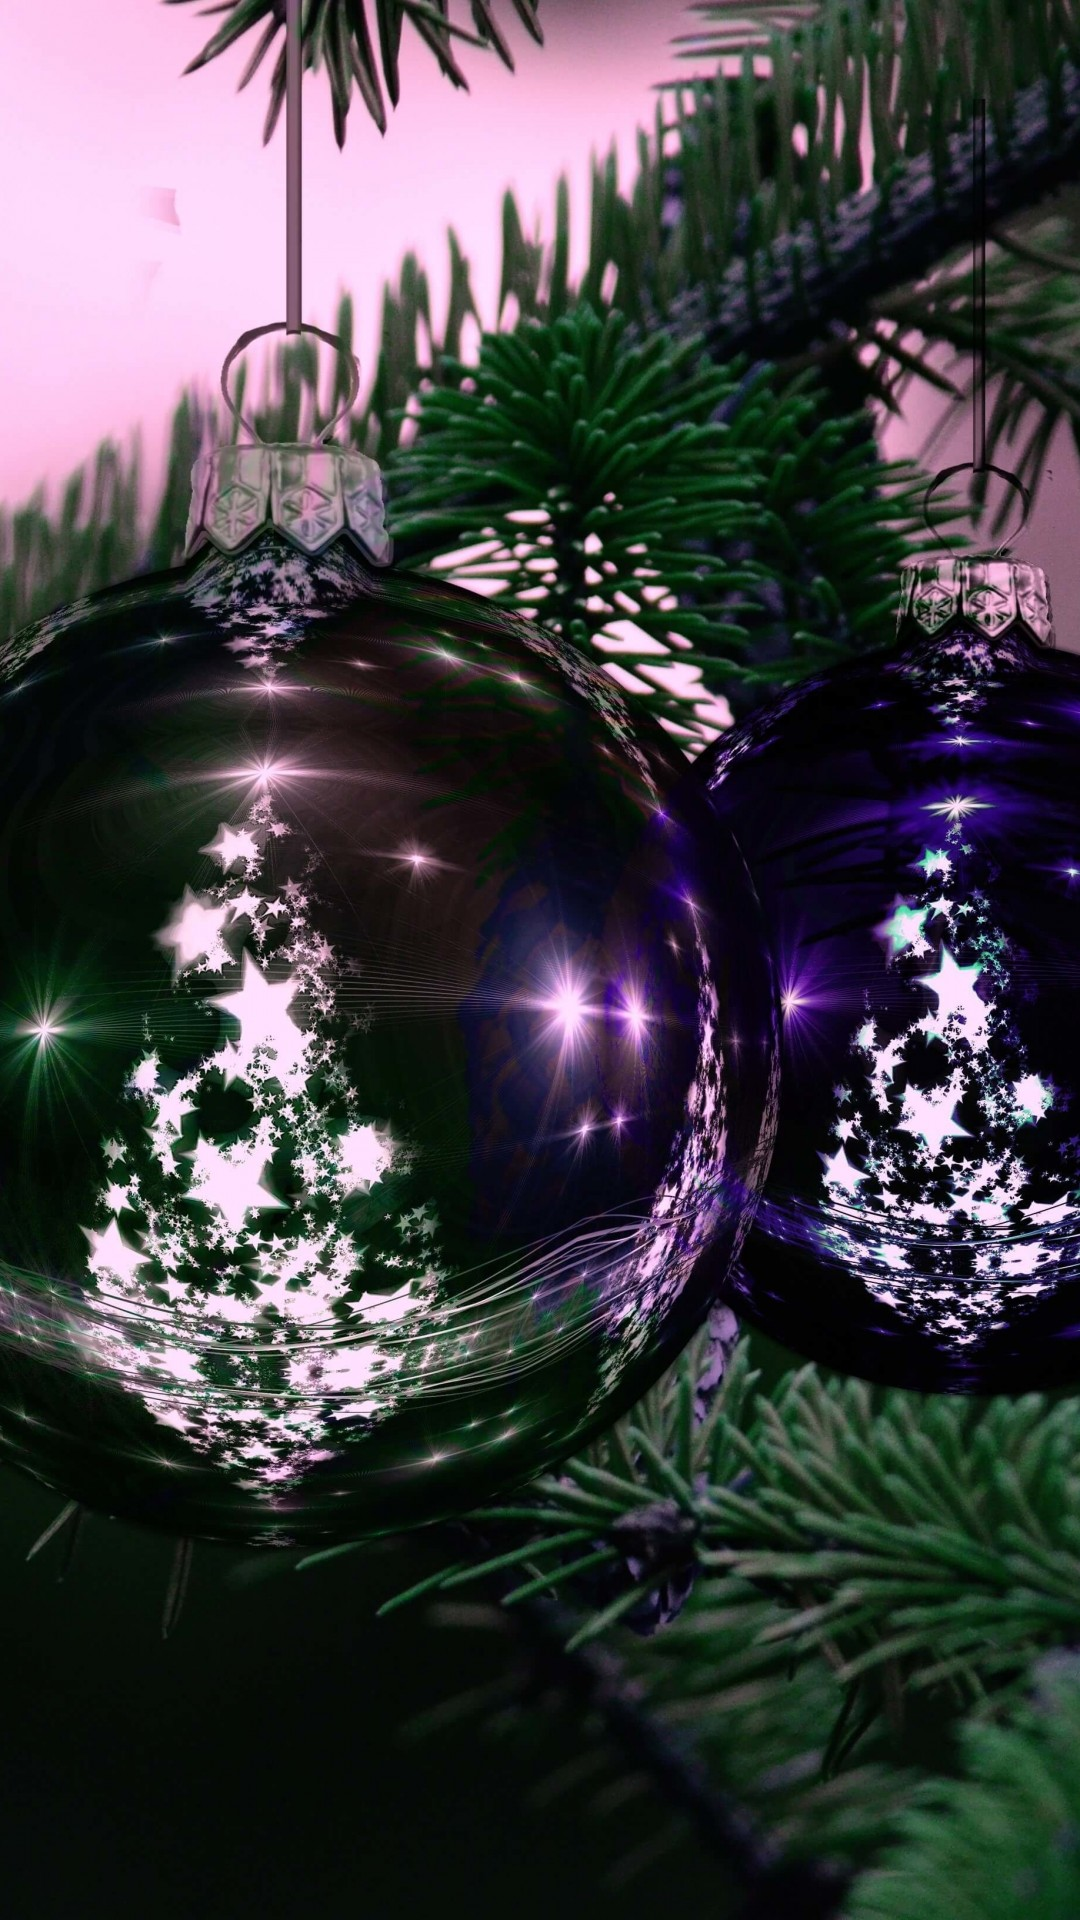 Beautiful Christmas Tree Ornaments Wallpaper for LG G2